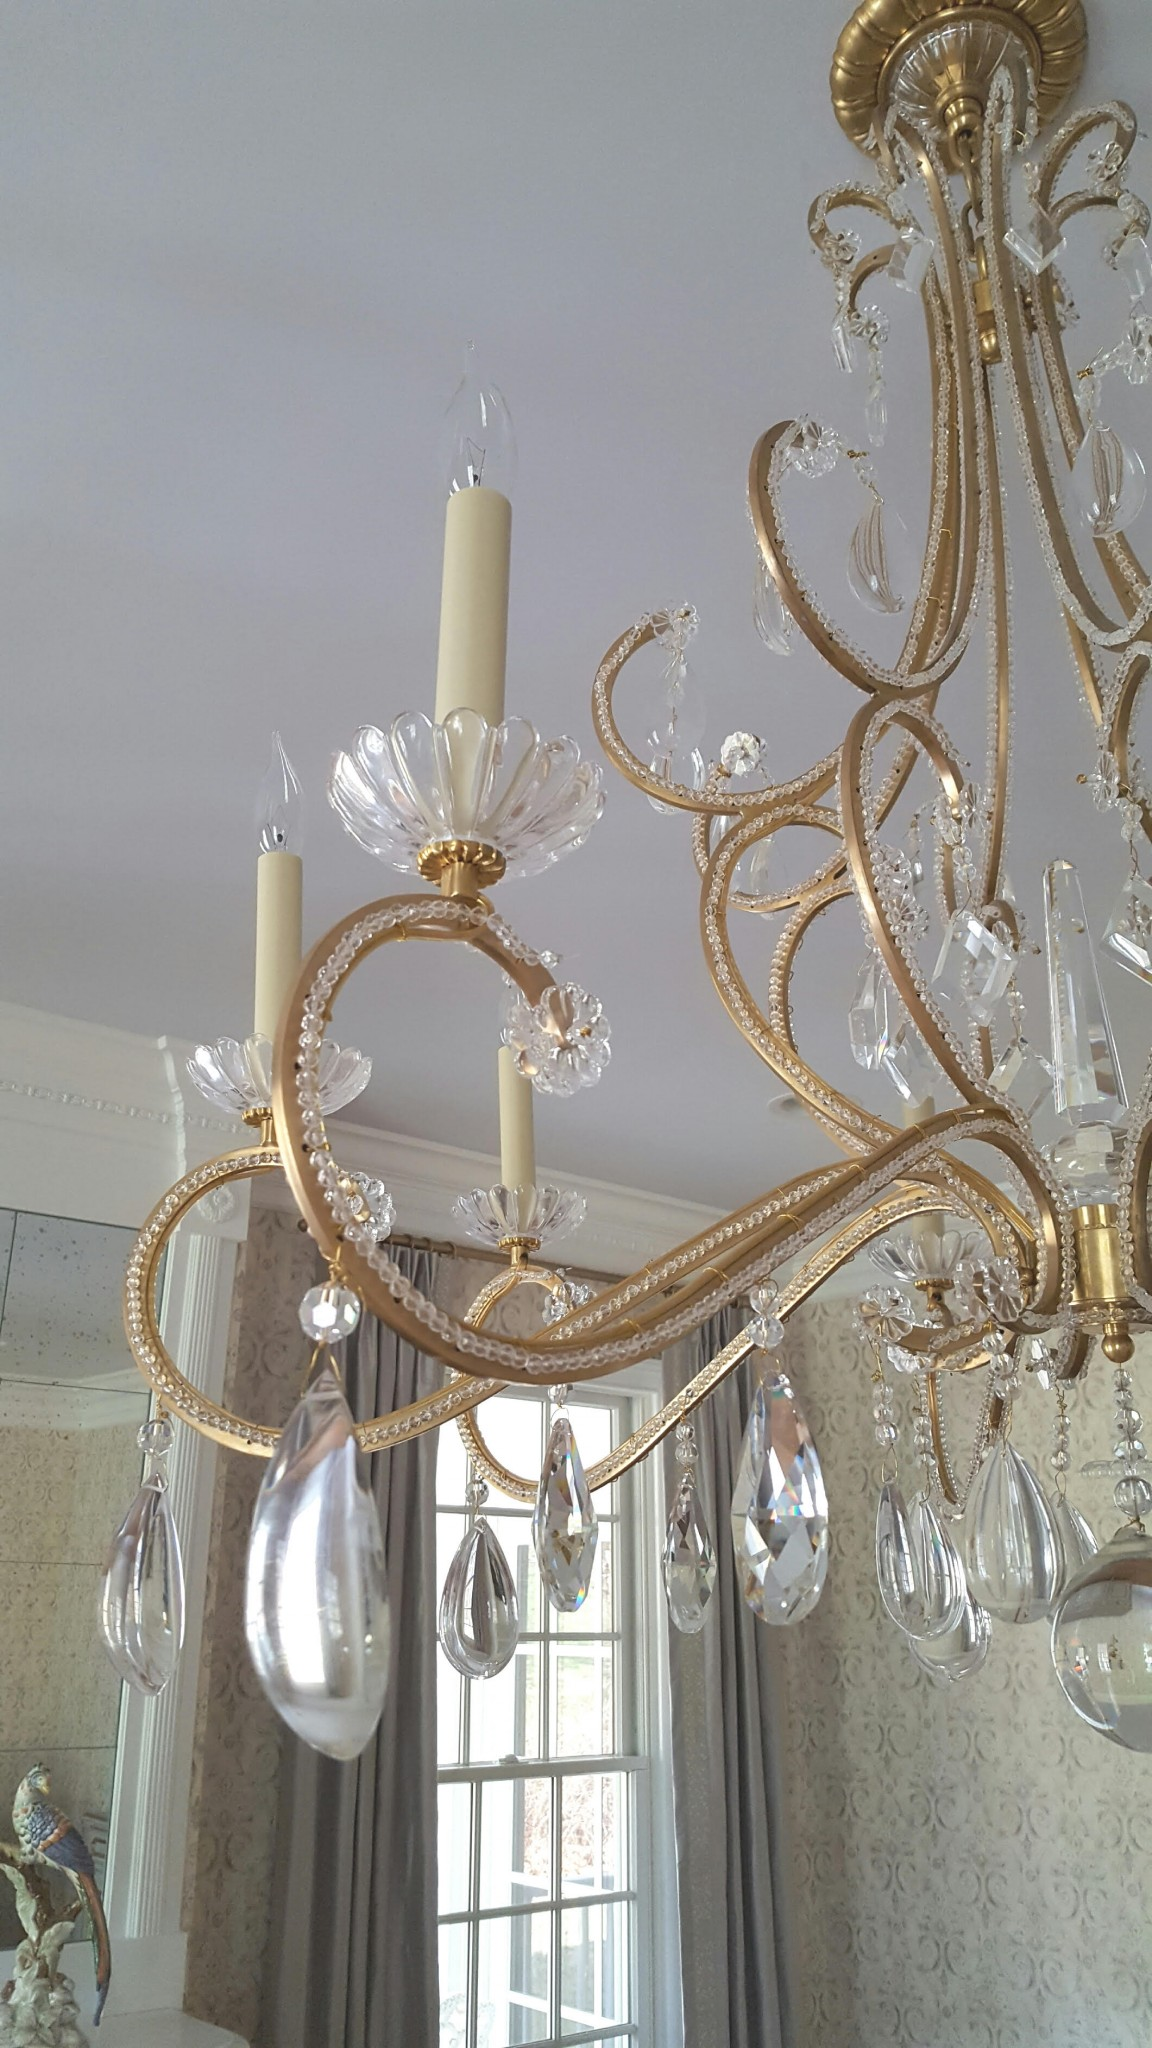 Chandelier for Sale at Simply Shopping at Watercress Springs Estate Sa